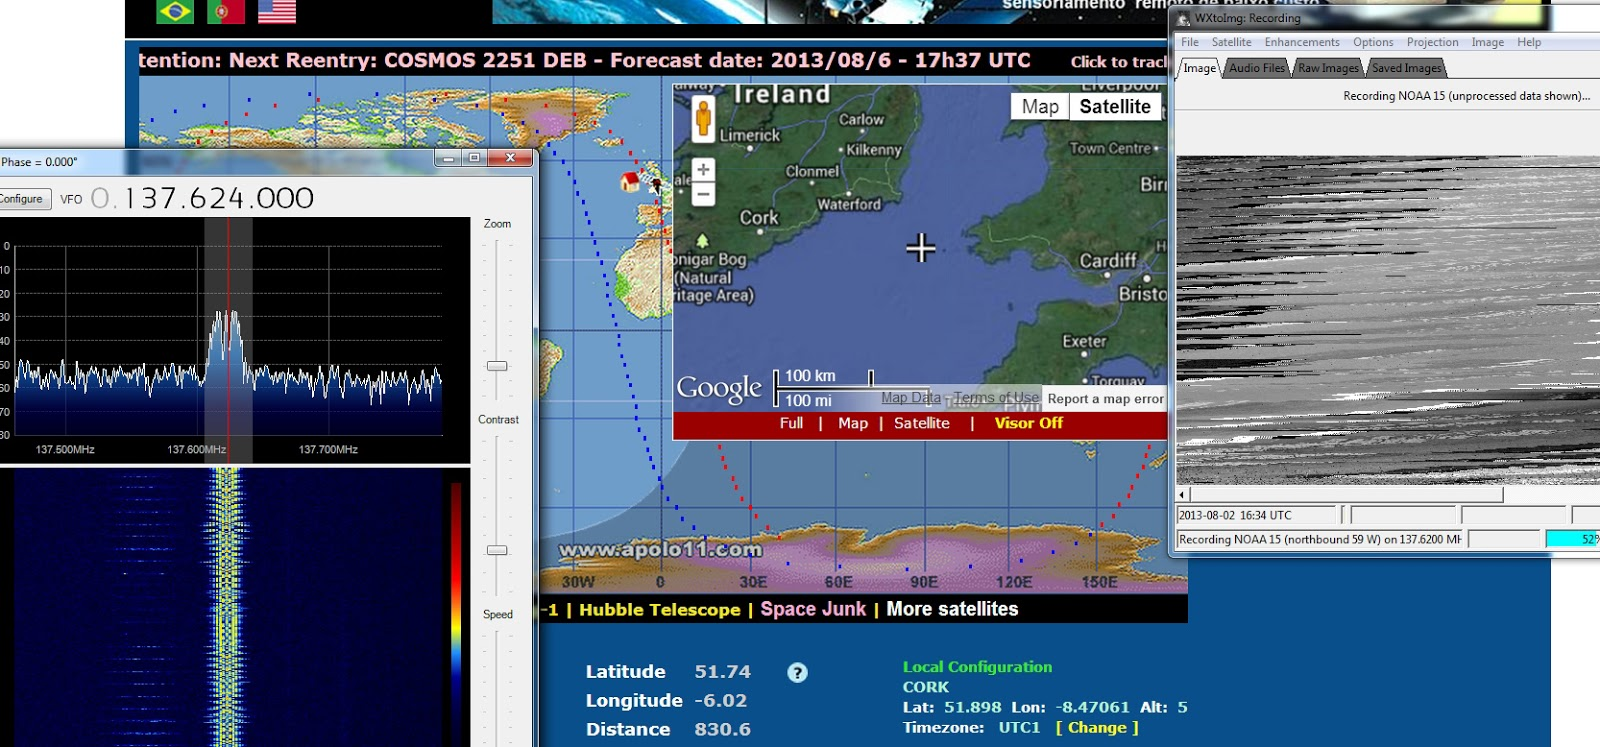 SDR For Mariners Moved To Radioforeveryonecom Weather Satellites - World weather satellite live